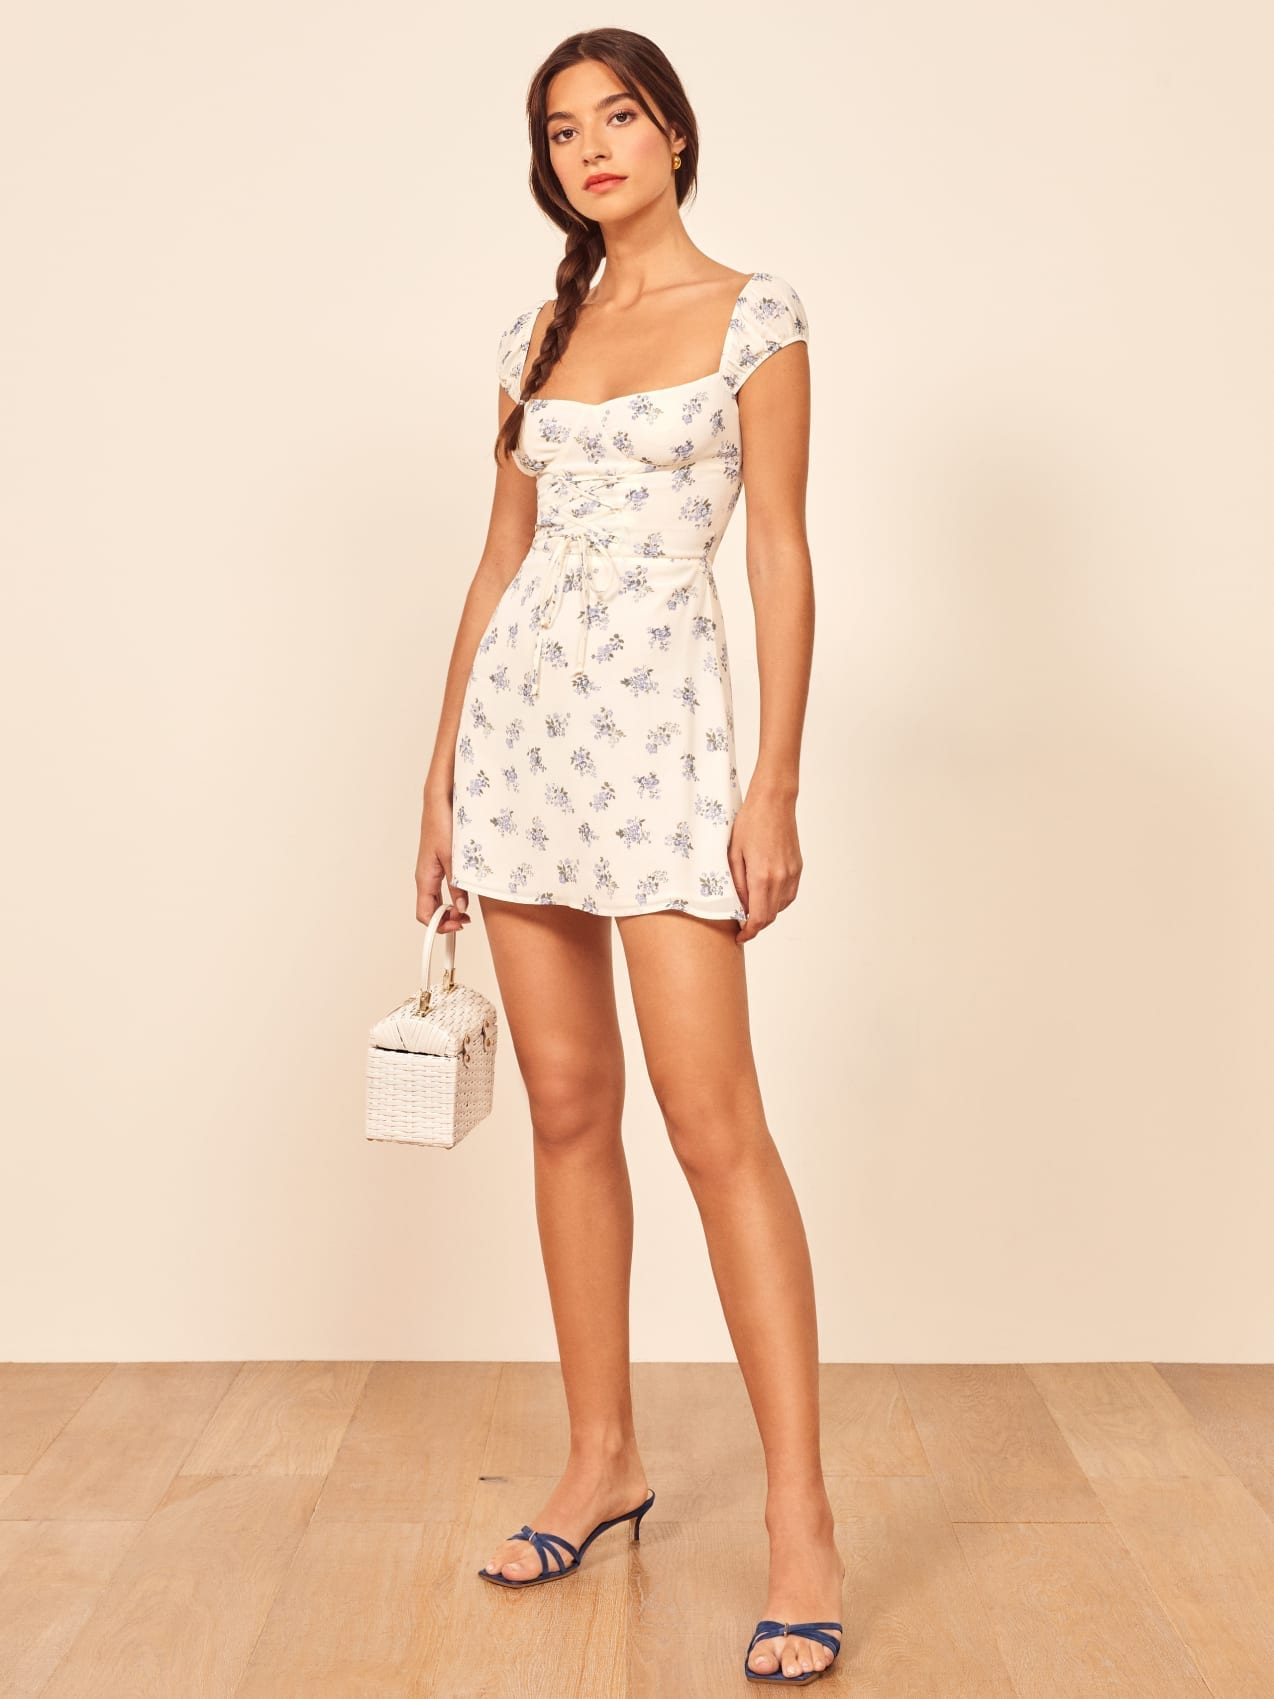 THEREFORMATION Jess White Dress